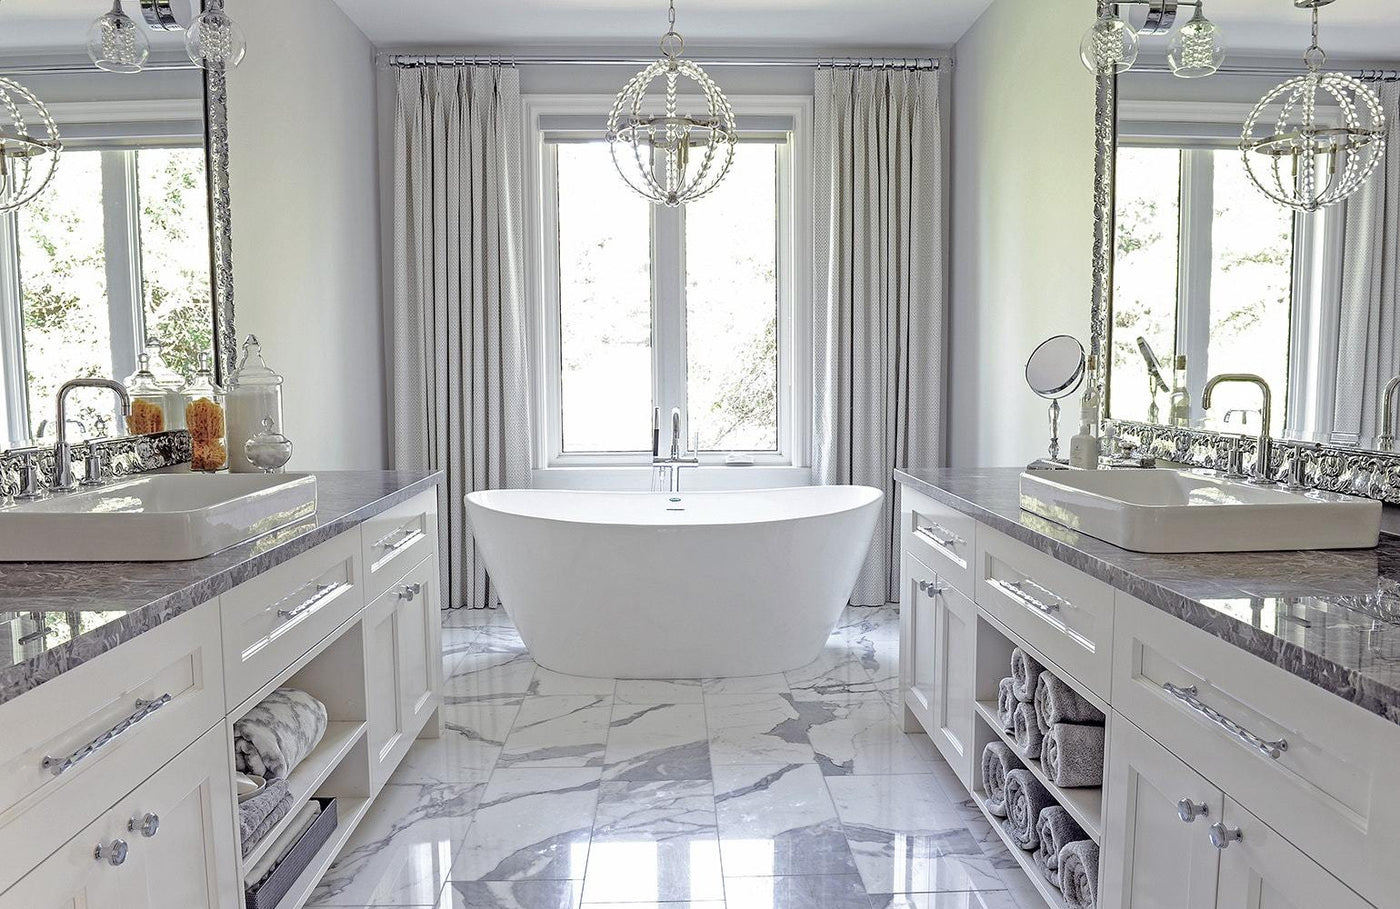 Get Inspired with Different Bathroom Themes